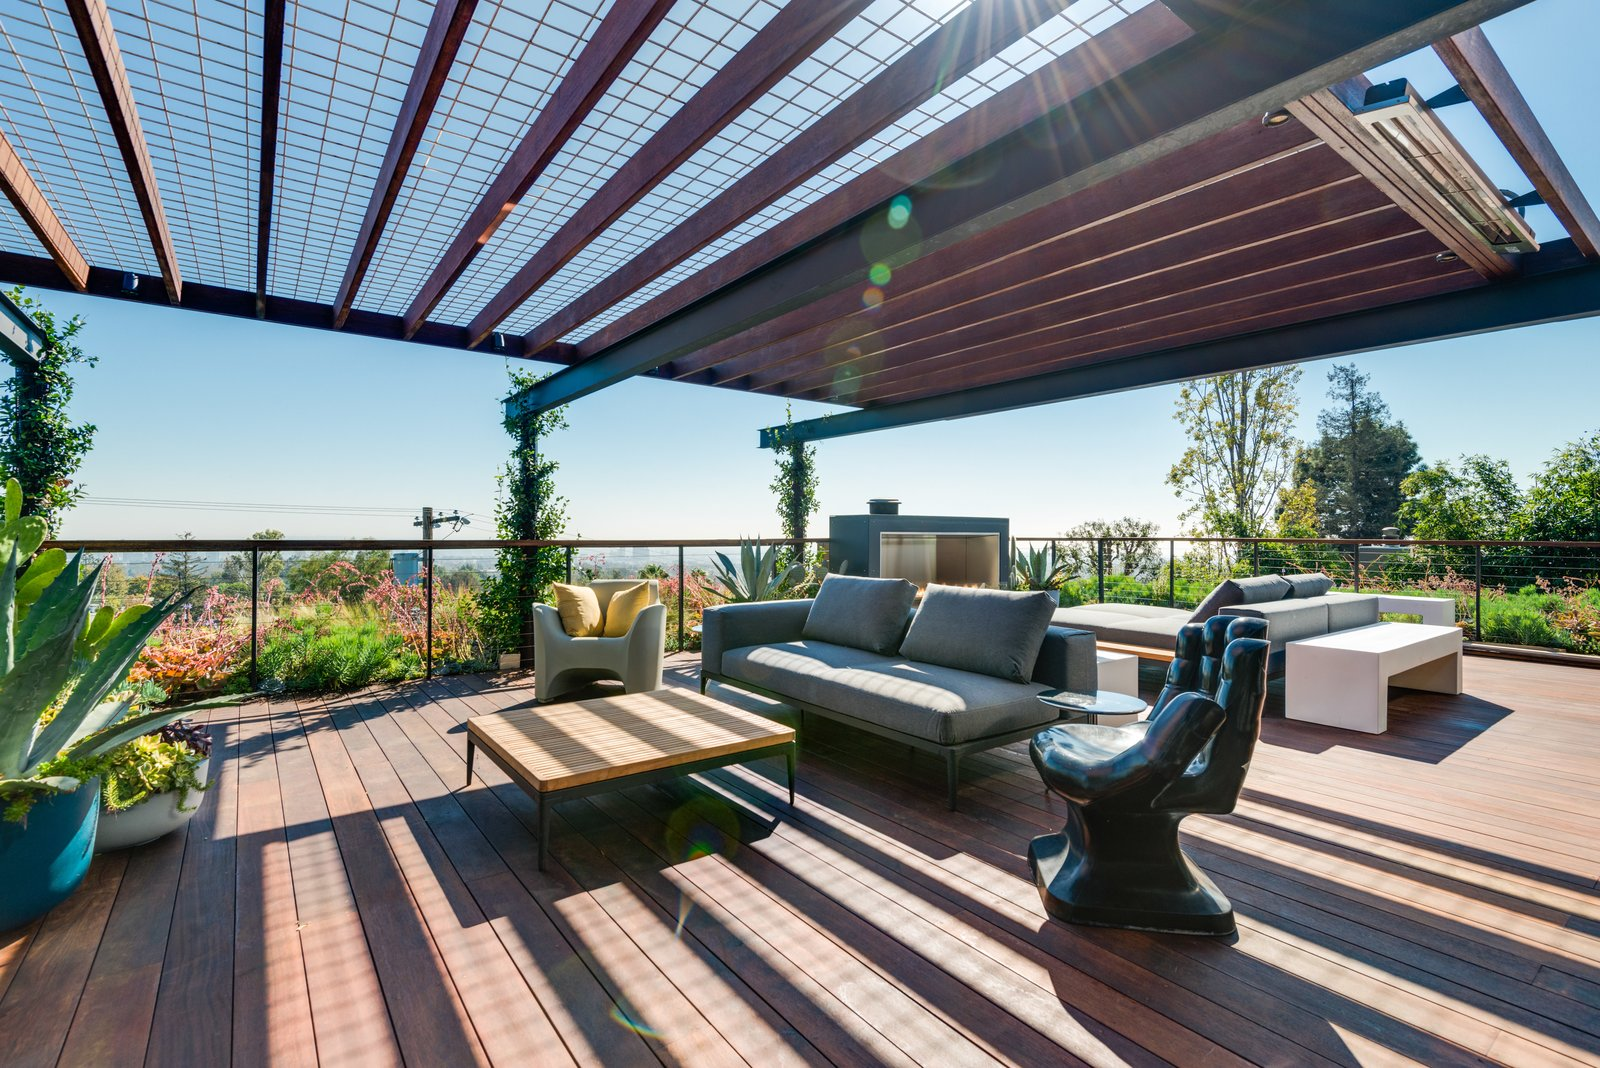 Outdoor, Wood, Metal, Decking, Rooftop, Planters, Horizontal, and Raised Planters The cantilevered flating Managris wood deck.  Best Outdoor Decking Metal Photos from A Renovated Harry Gesner–Designed Midcentury in L.A. Wants $9.4M